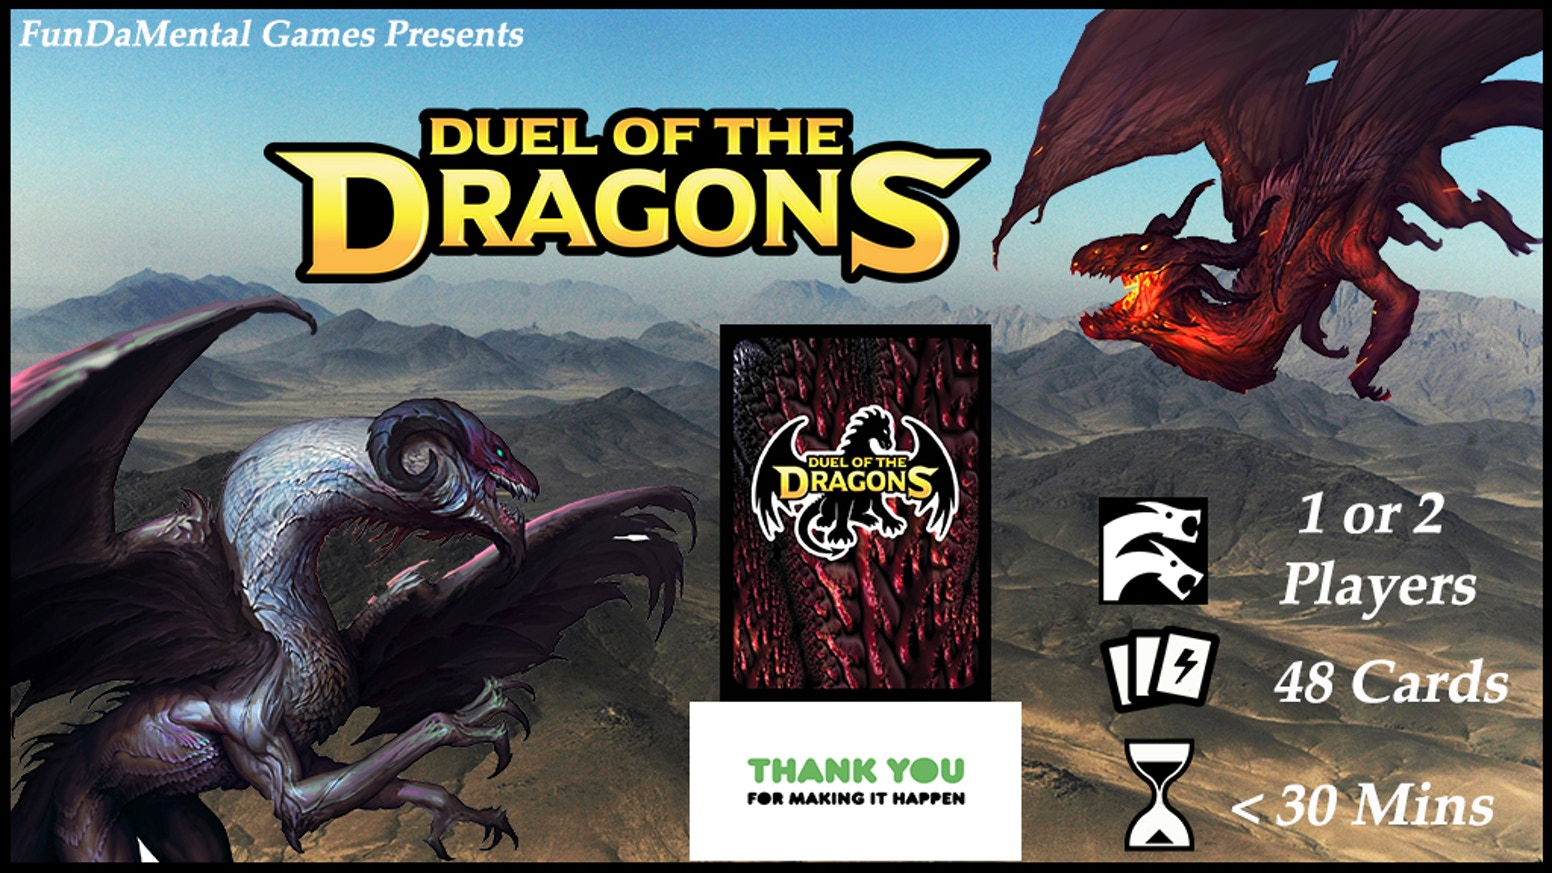 Become a powerful dragon in this 2 player or Solo card game with strategic methods of combat and card playing to battle your opponent.